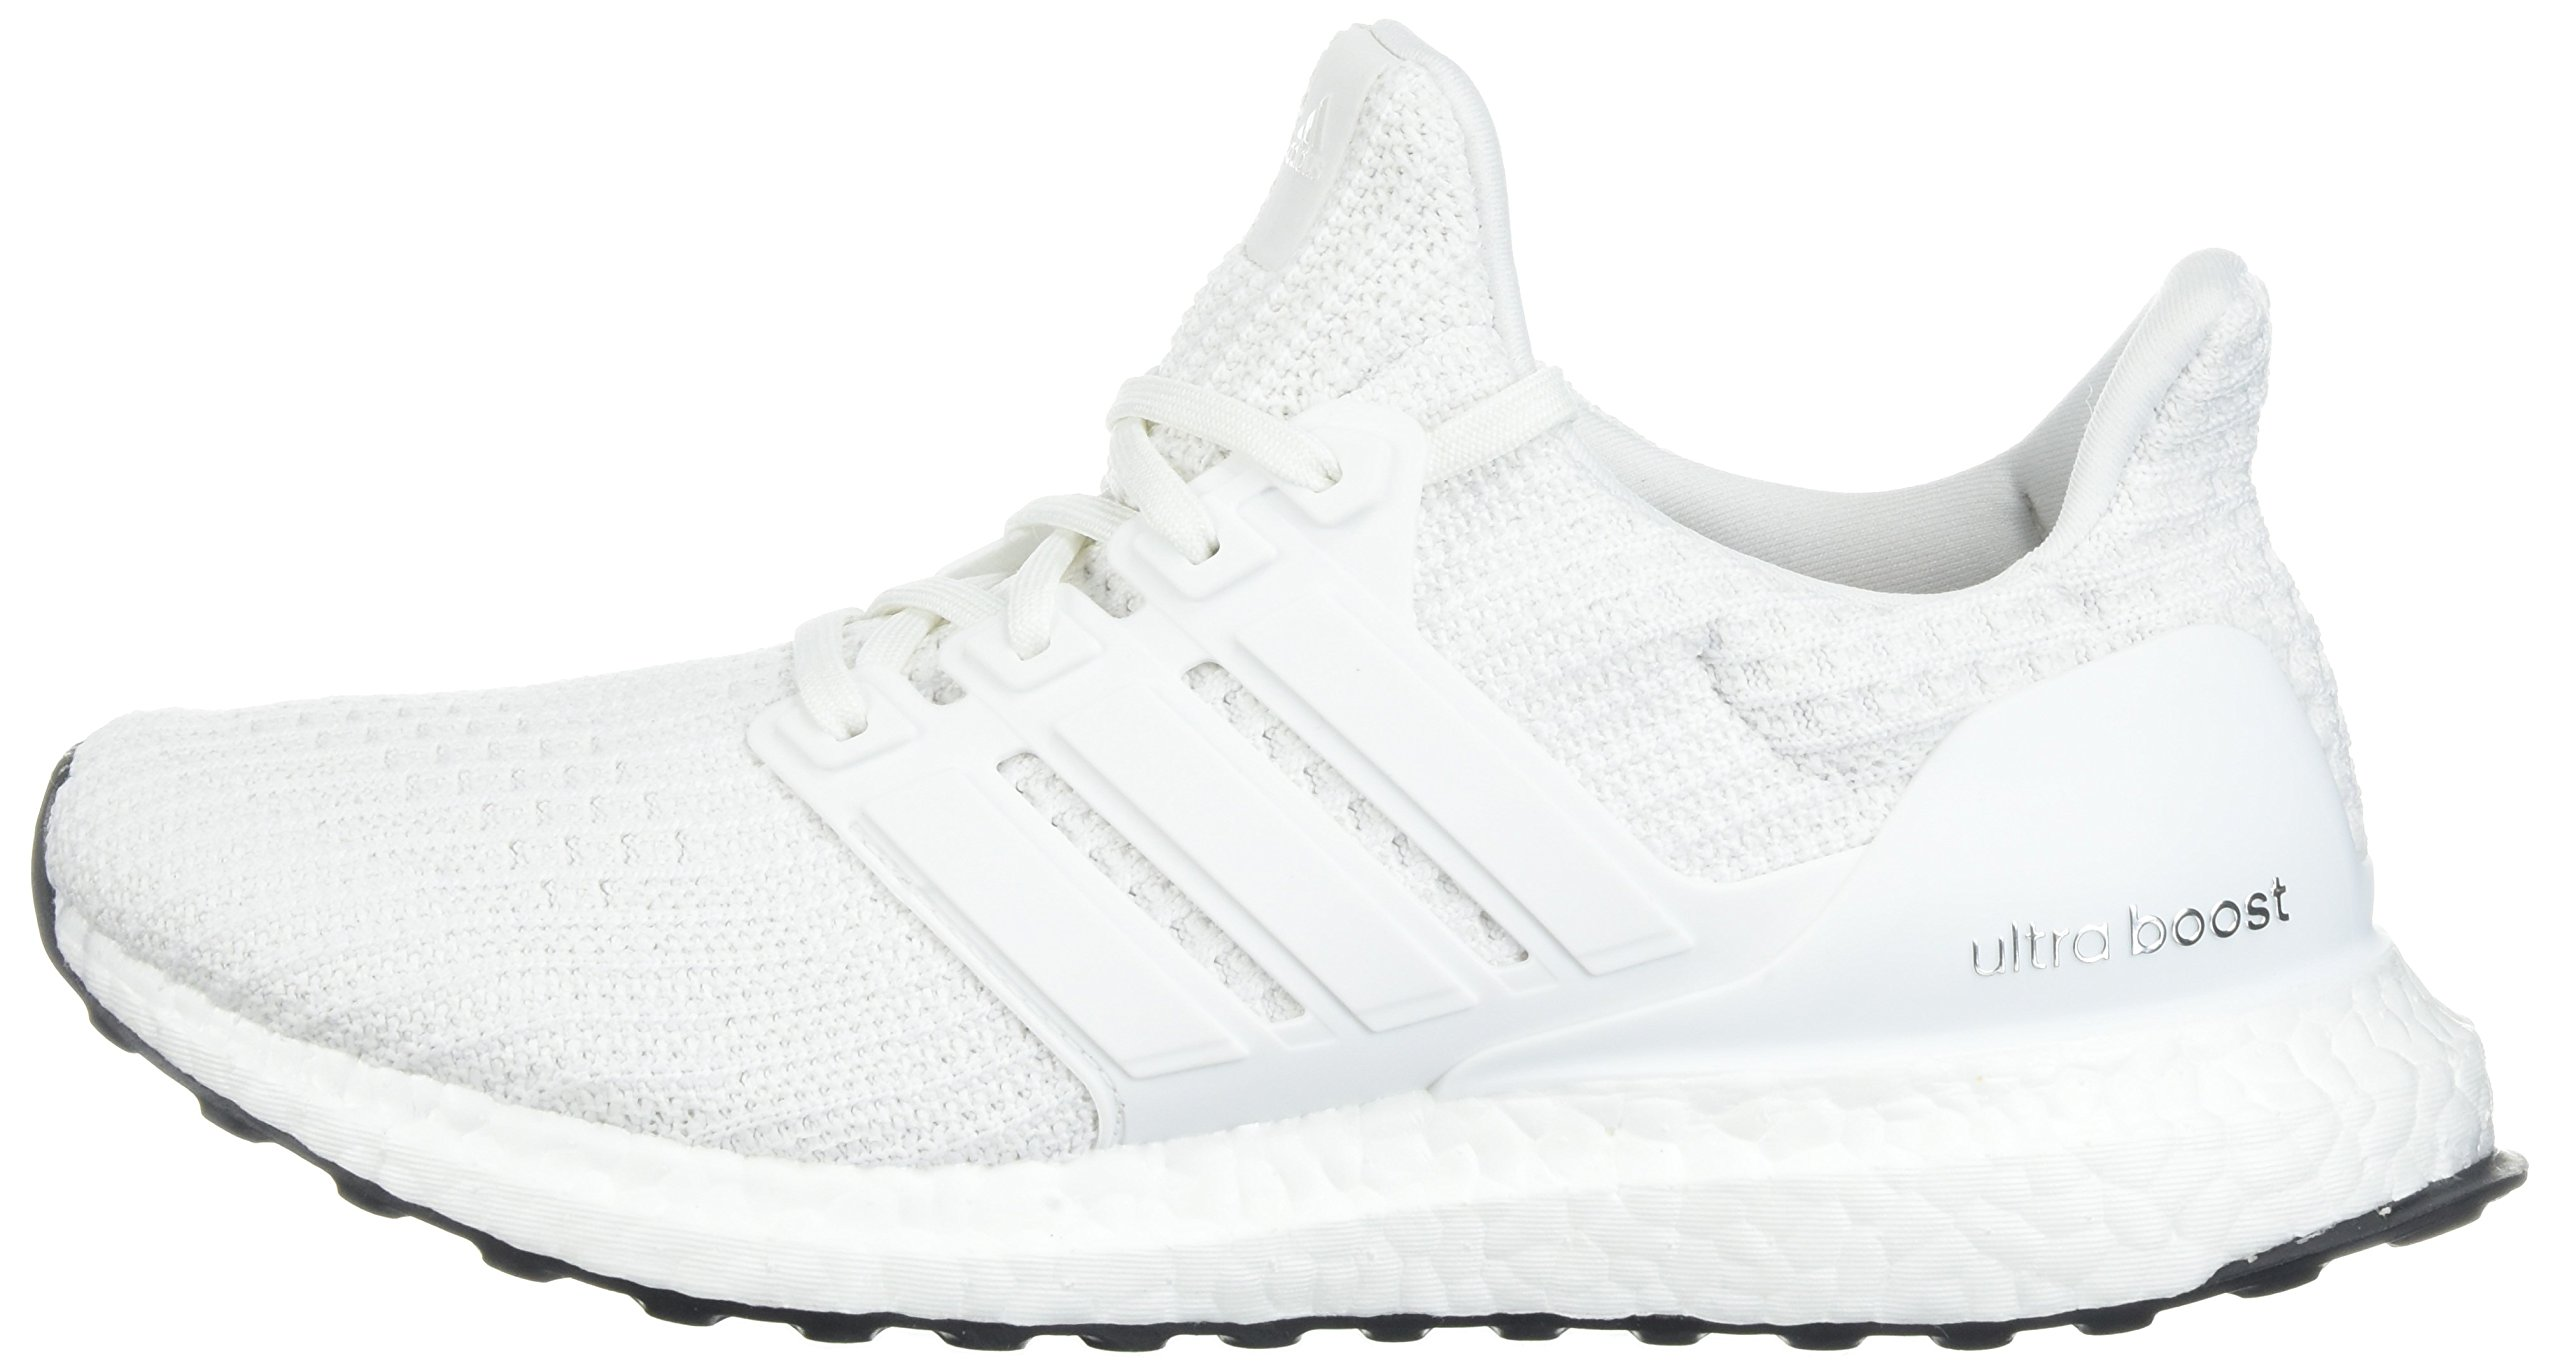 adidas Men's Ultraboost Road Running Shoe, White/White/White, 6.5 M US by adidas (Image #5)